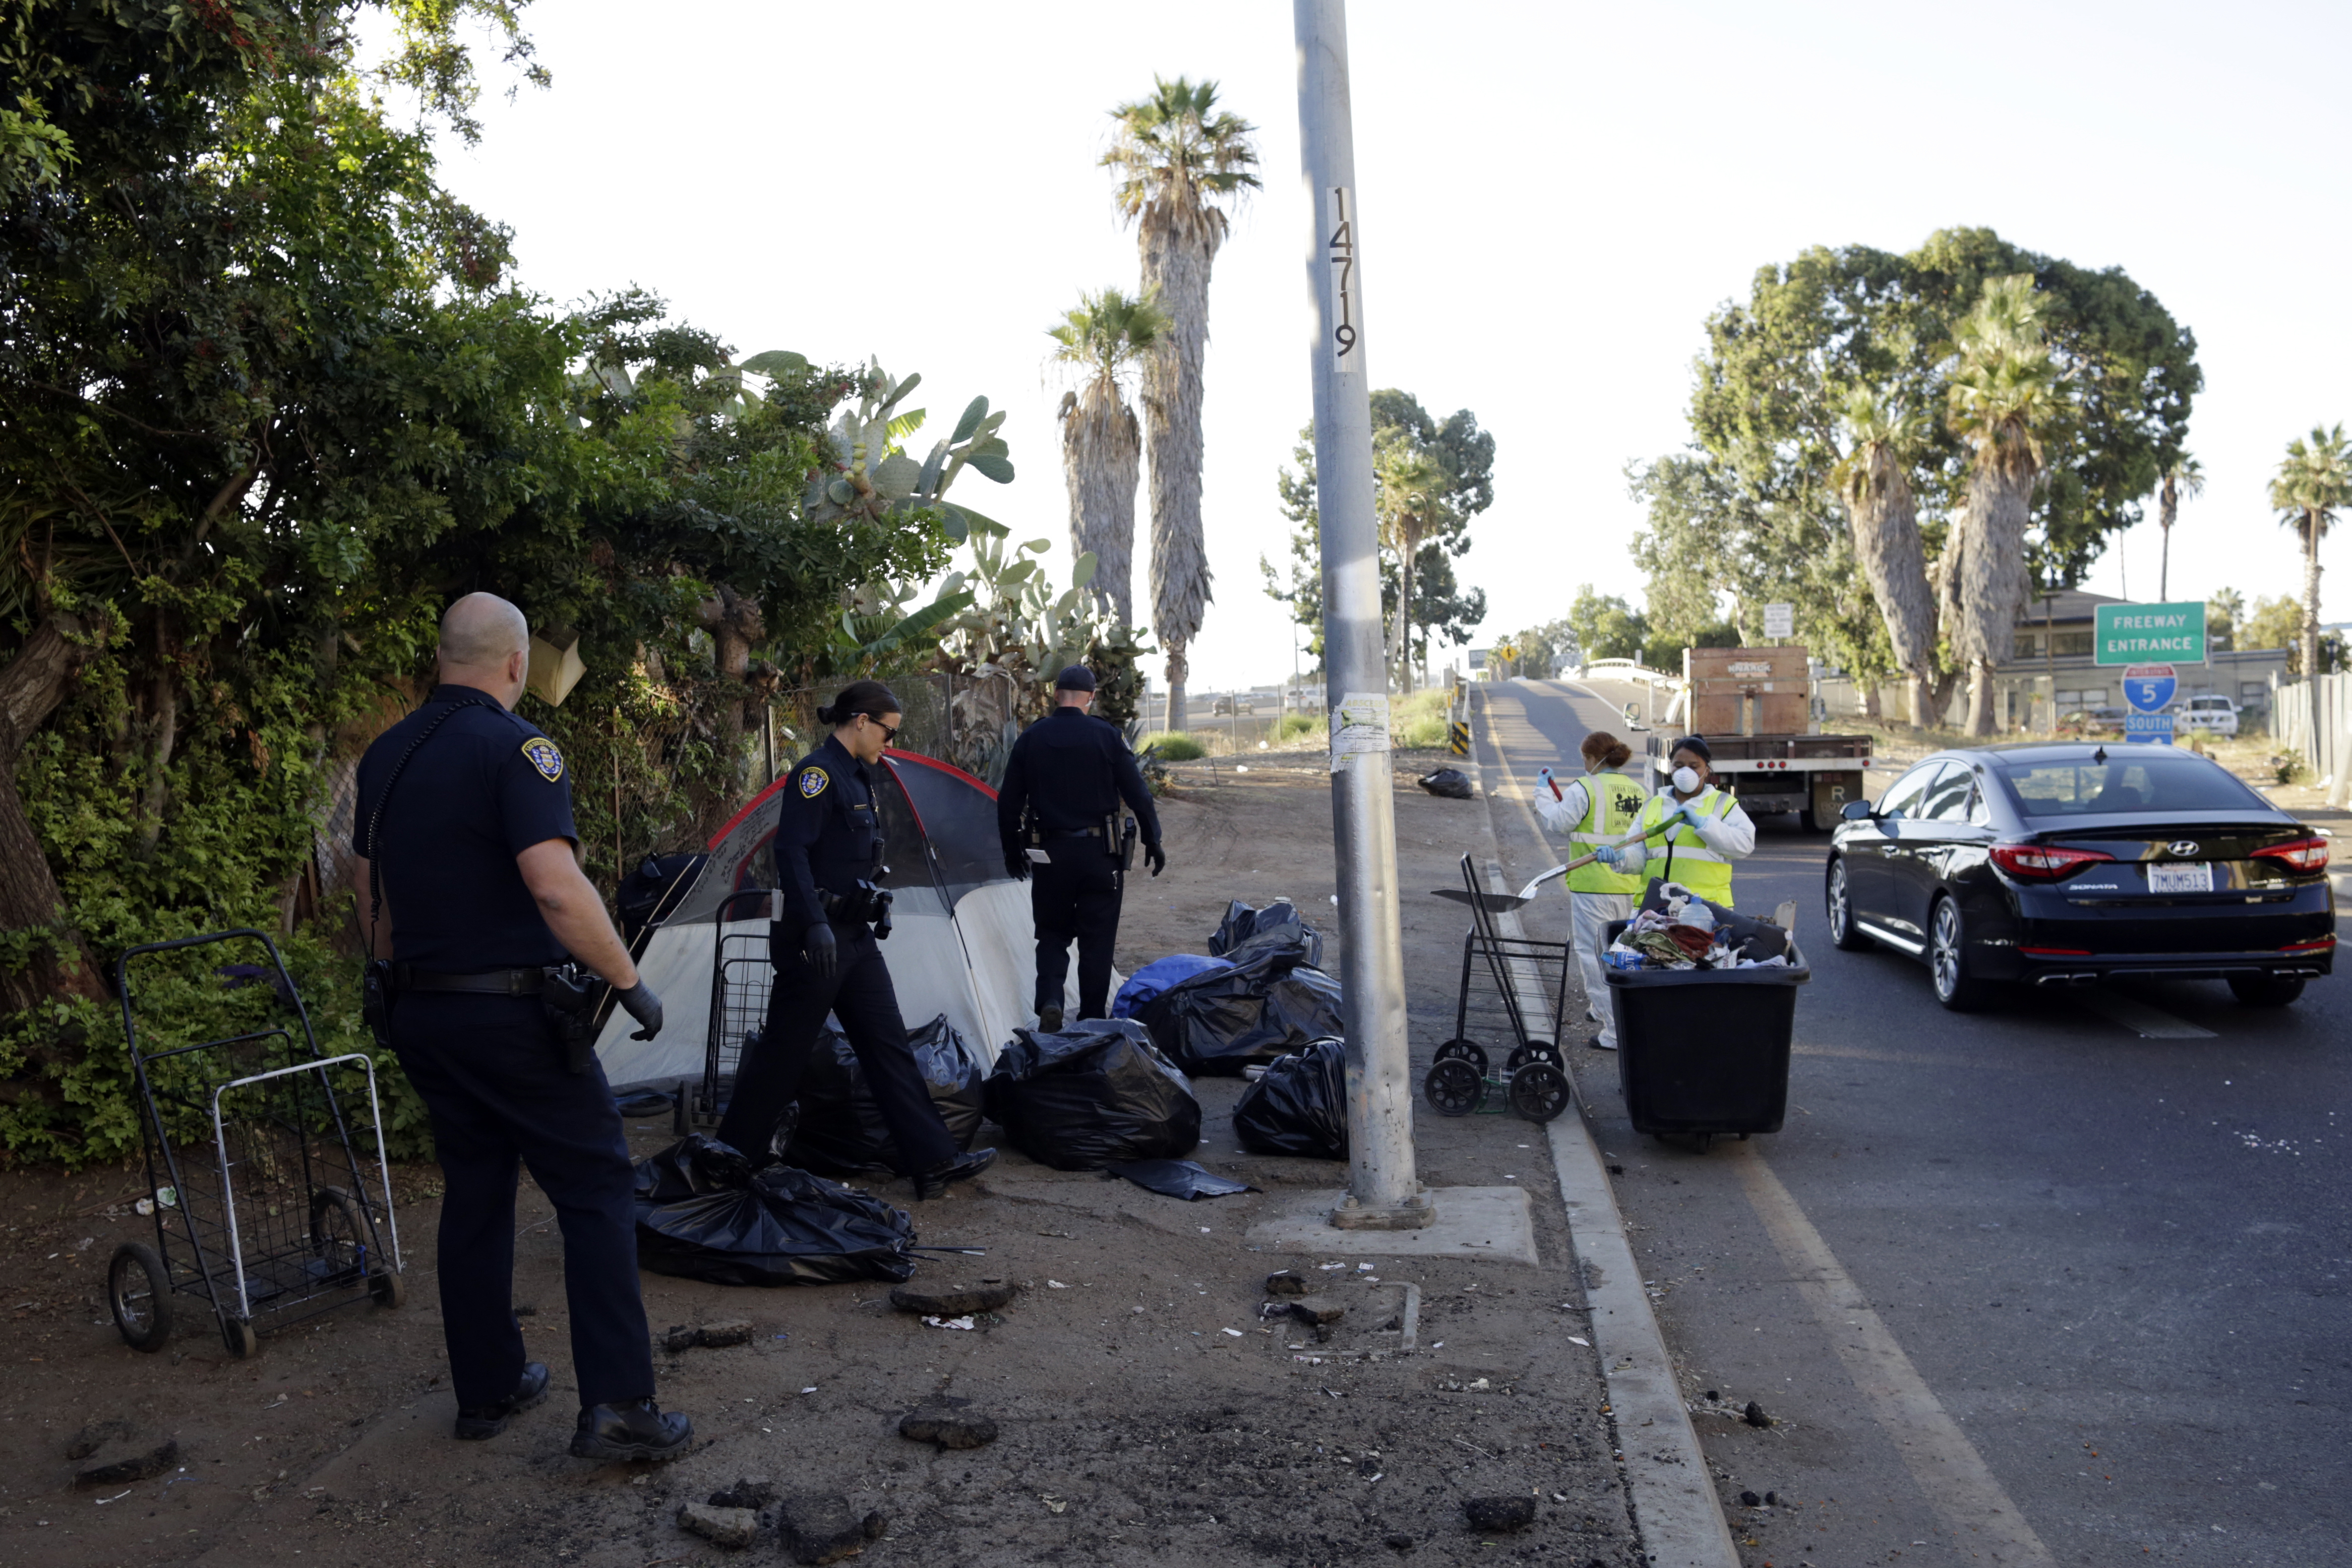 UN Observer Calls For 'Moratorium' On Criminalizing Homelessness In San Diego